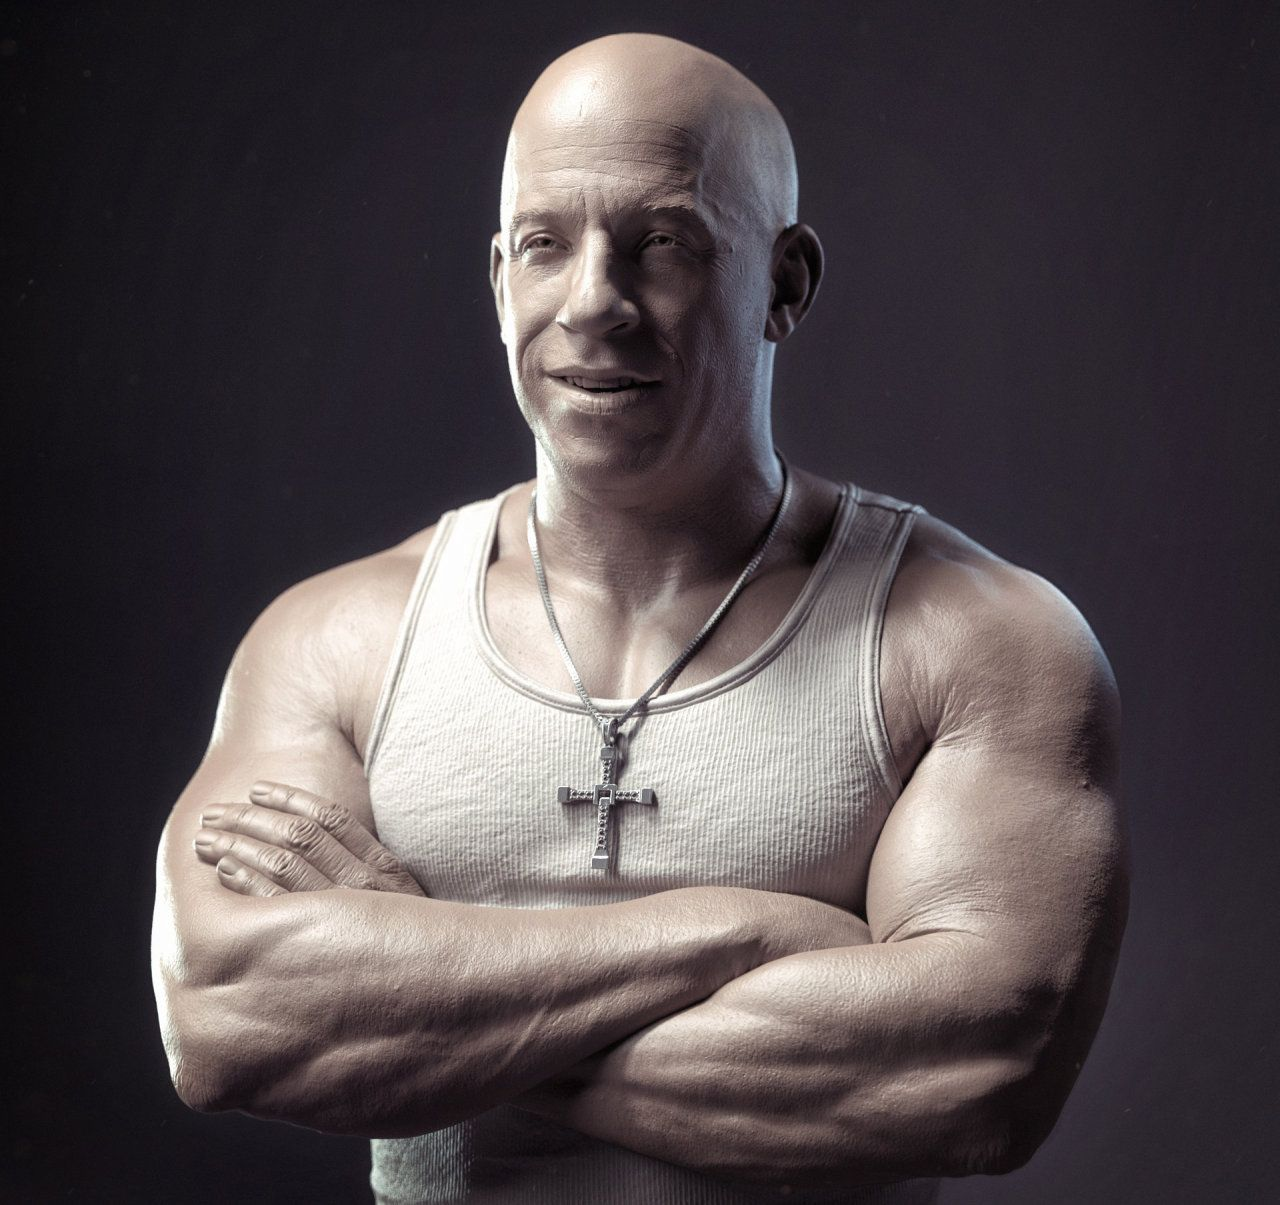 Vin_sculpt, created by Sandeep VS using Zbrush, Arnold and